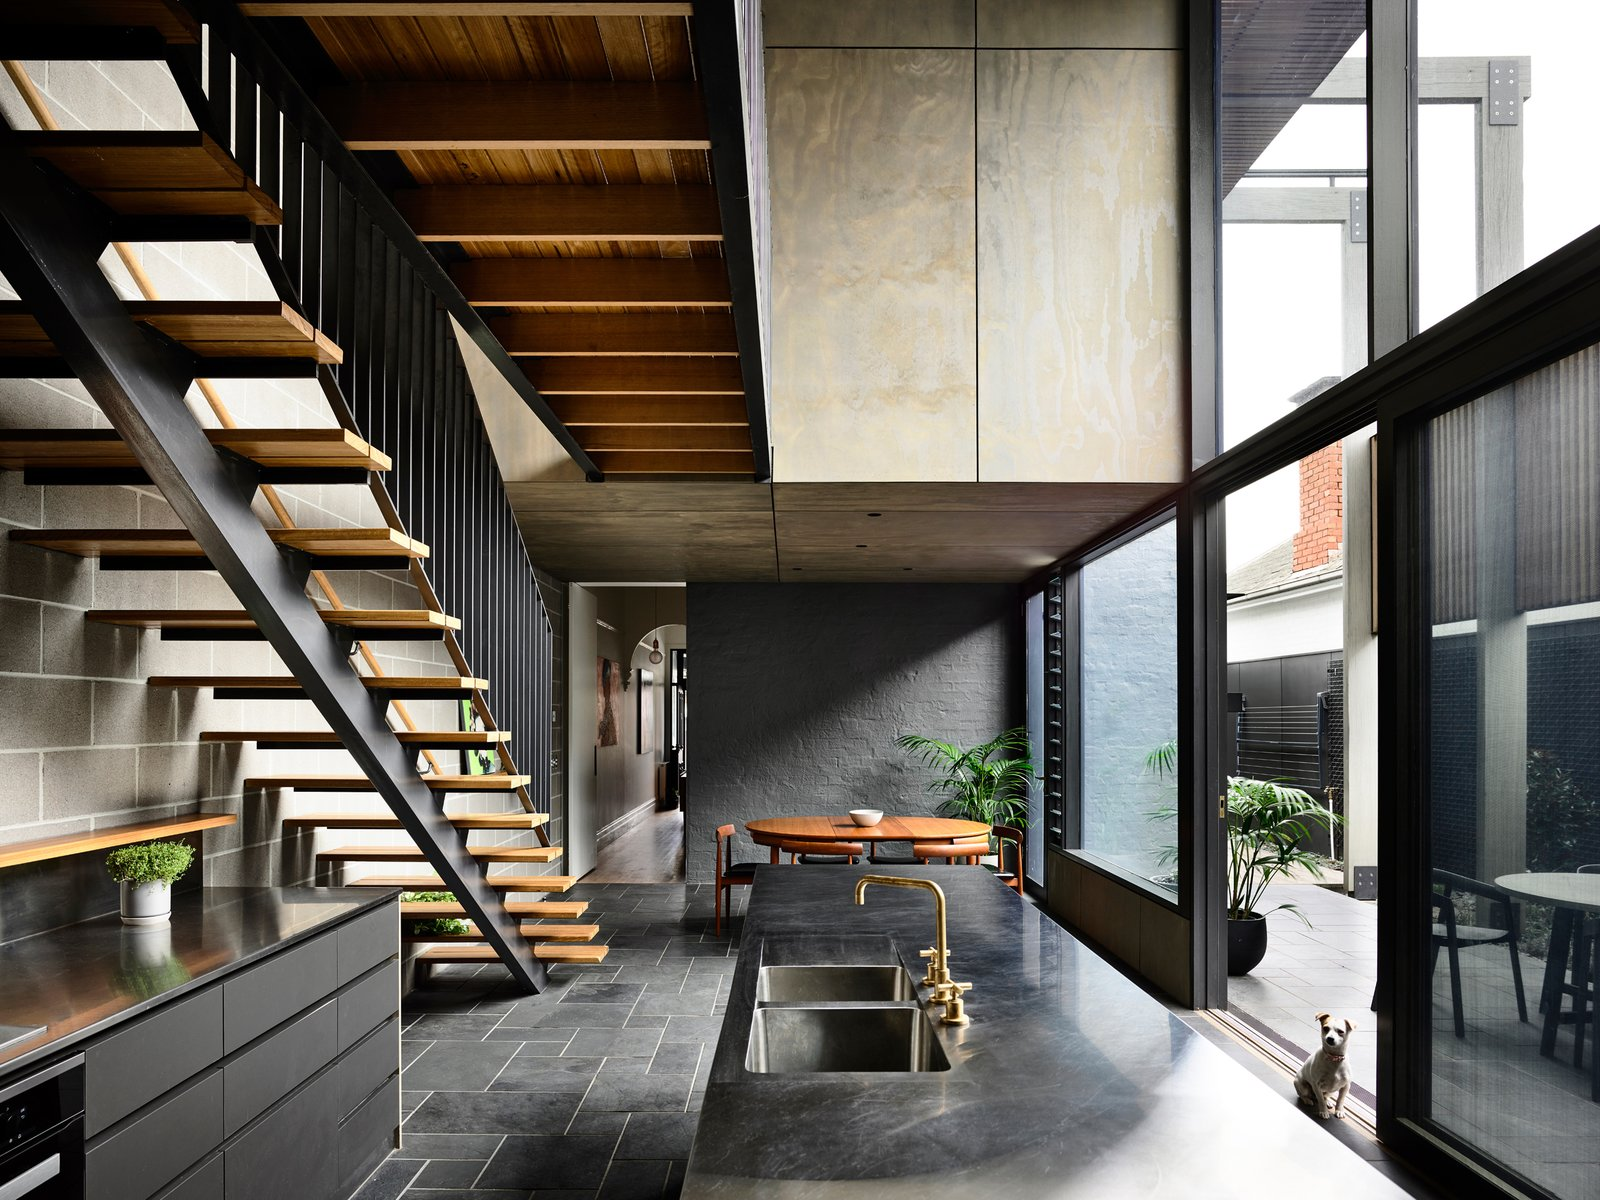 Kitchen, Range Hood, Slate Floor, Dishwasher, Metal Counter, Range, Refrigerator, Colorful Cabinet, and Undermount Sink Double-height glass now lets the communal living areas spill out onto an exterior courtyard.  Photos from A Sleek Addition Lets a Melbourne Home and Garden Freely Merge